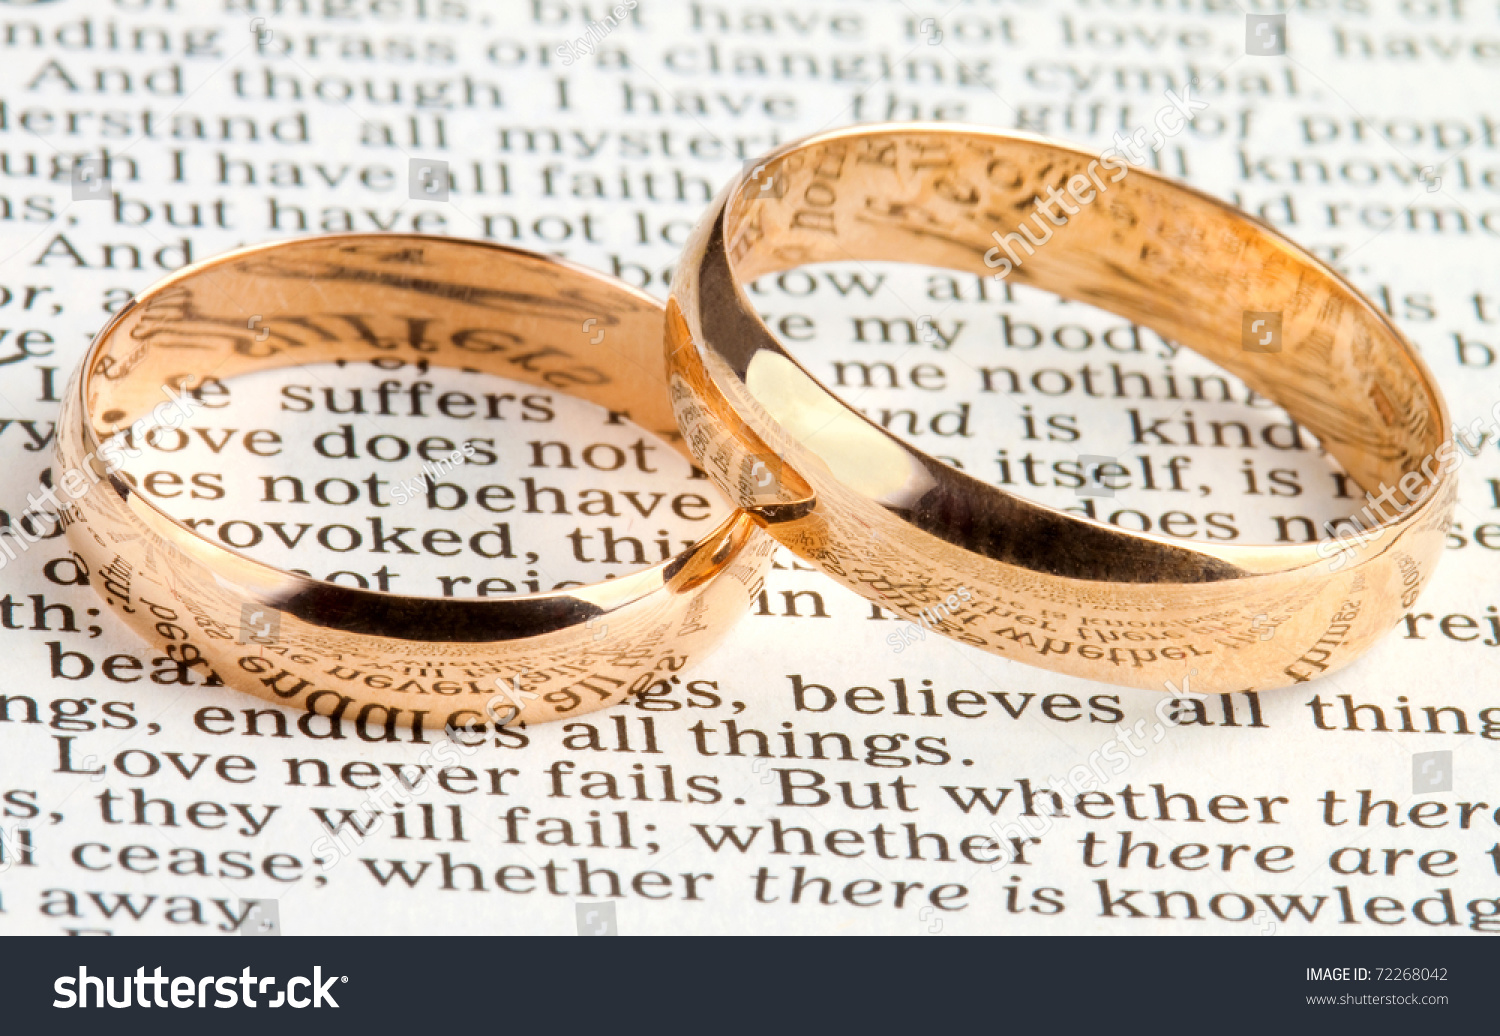 wedding photography you series kissed goodmanus blog before bible get scripture jewelers sun ring engagement by marriage rings the